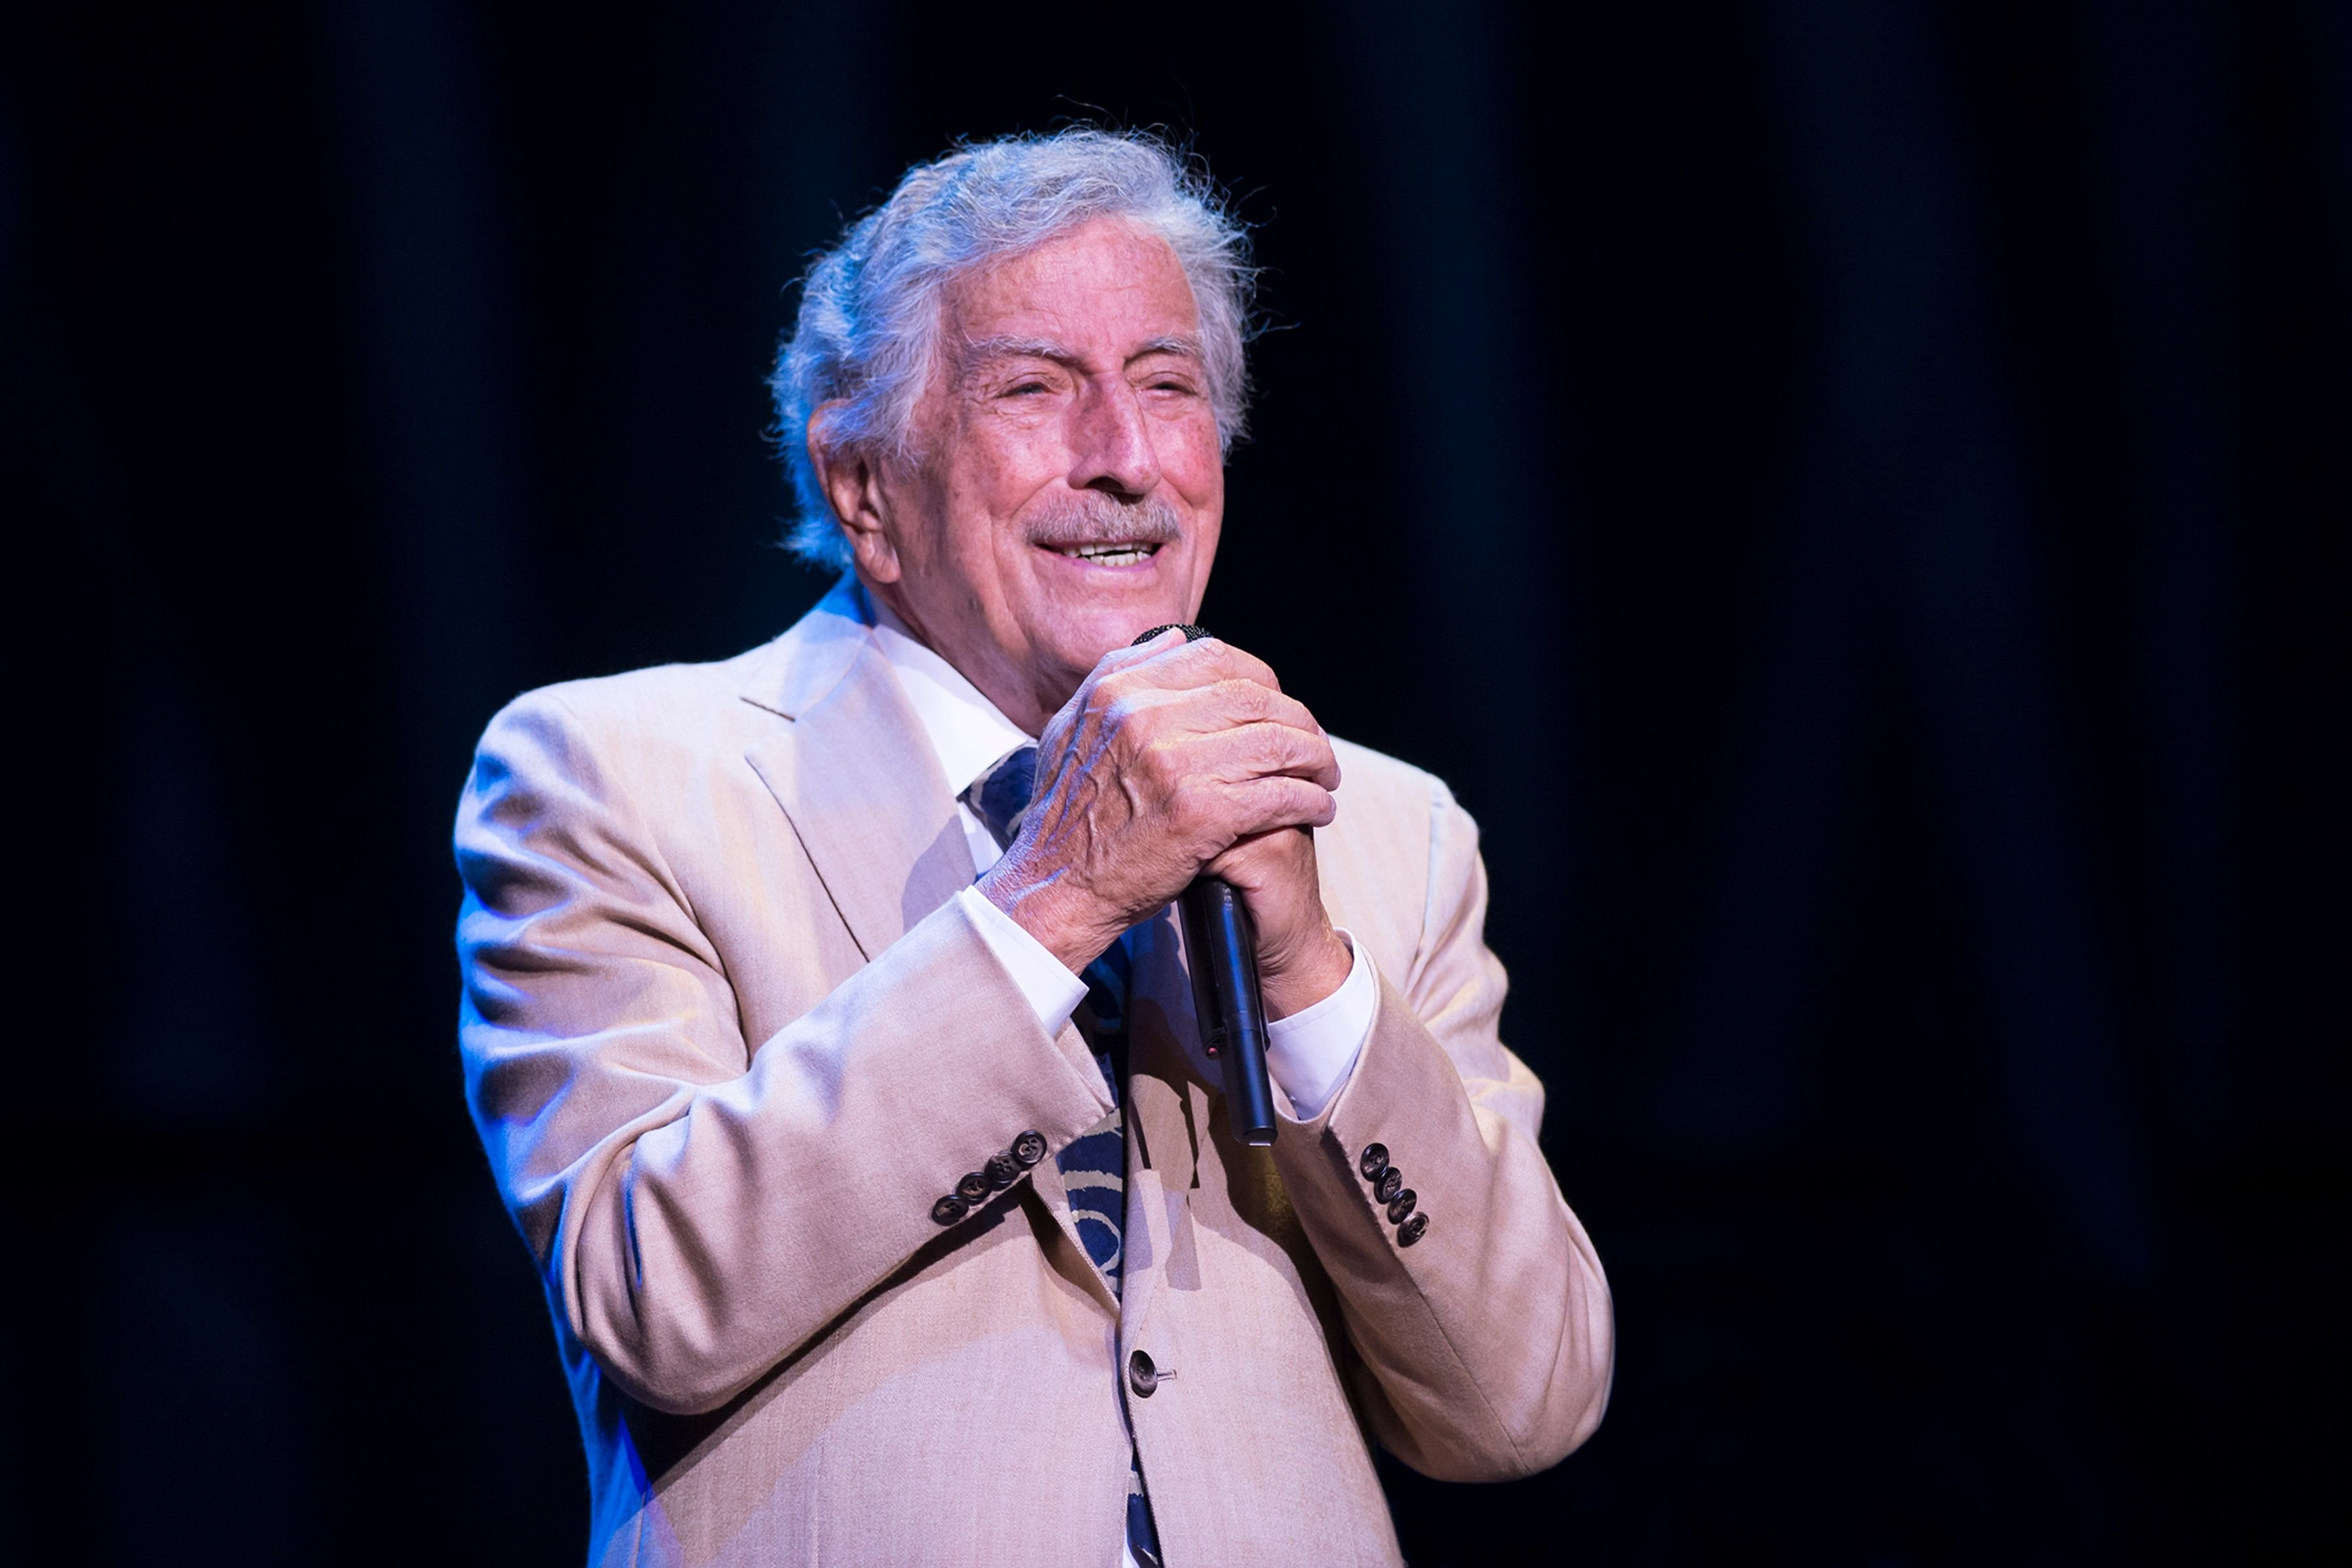 Tony Bennett performing on stage at Royal Albert Hall in London, England   Photo: Getty Images